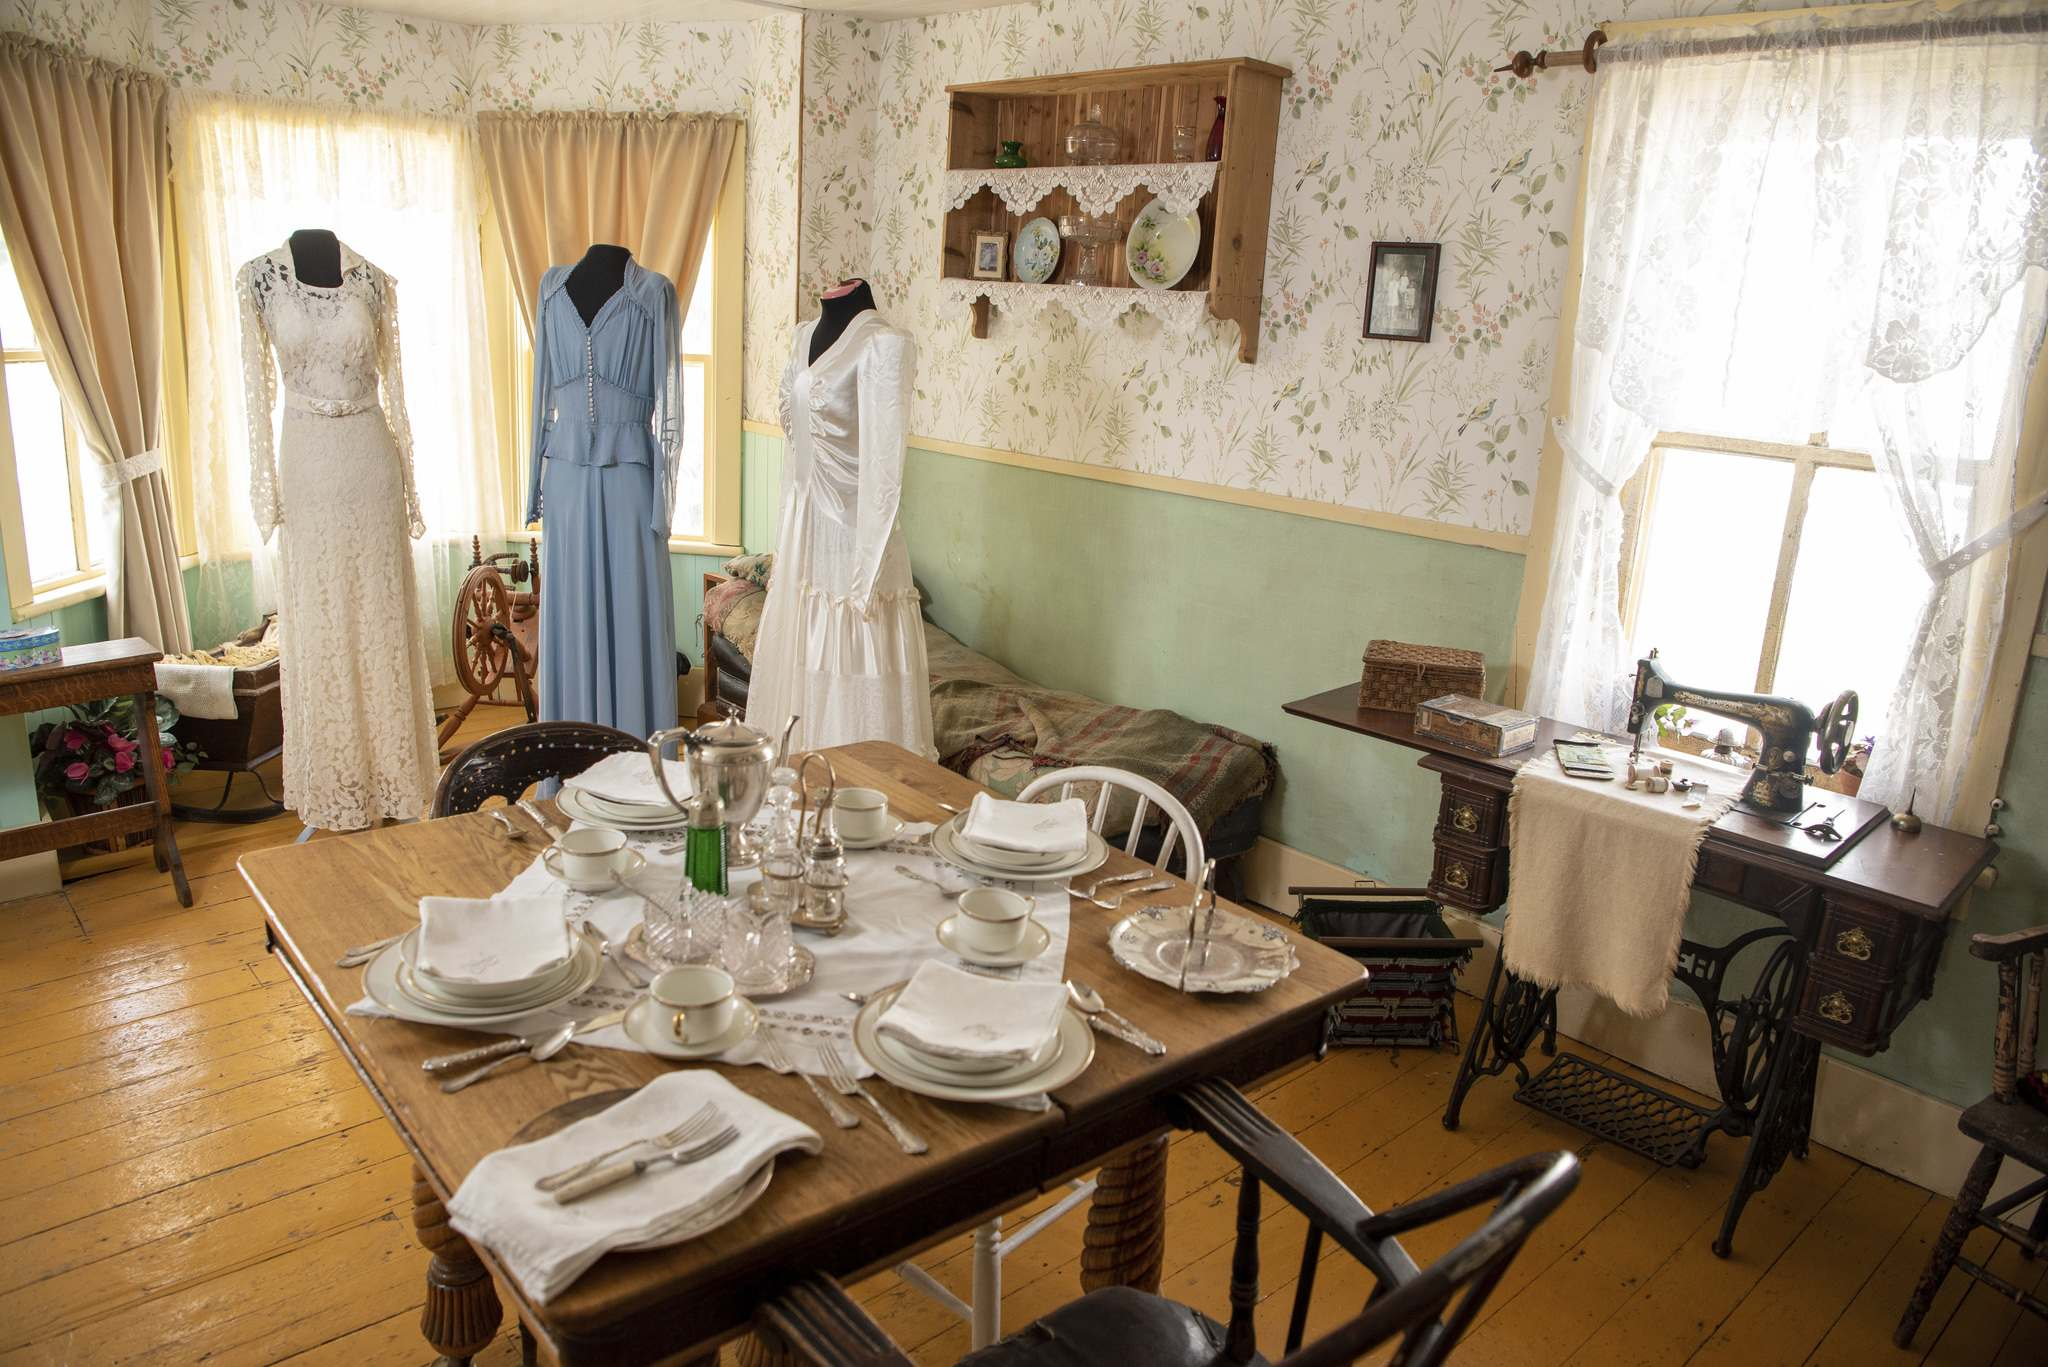 Wedding dresses dating from the Great Depression & War Collection are part of the I Do exhibition, on Wednesday to Sunday from 10 a.m. to 5 p.m. in Manitou.</p>